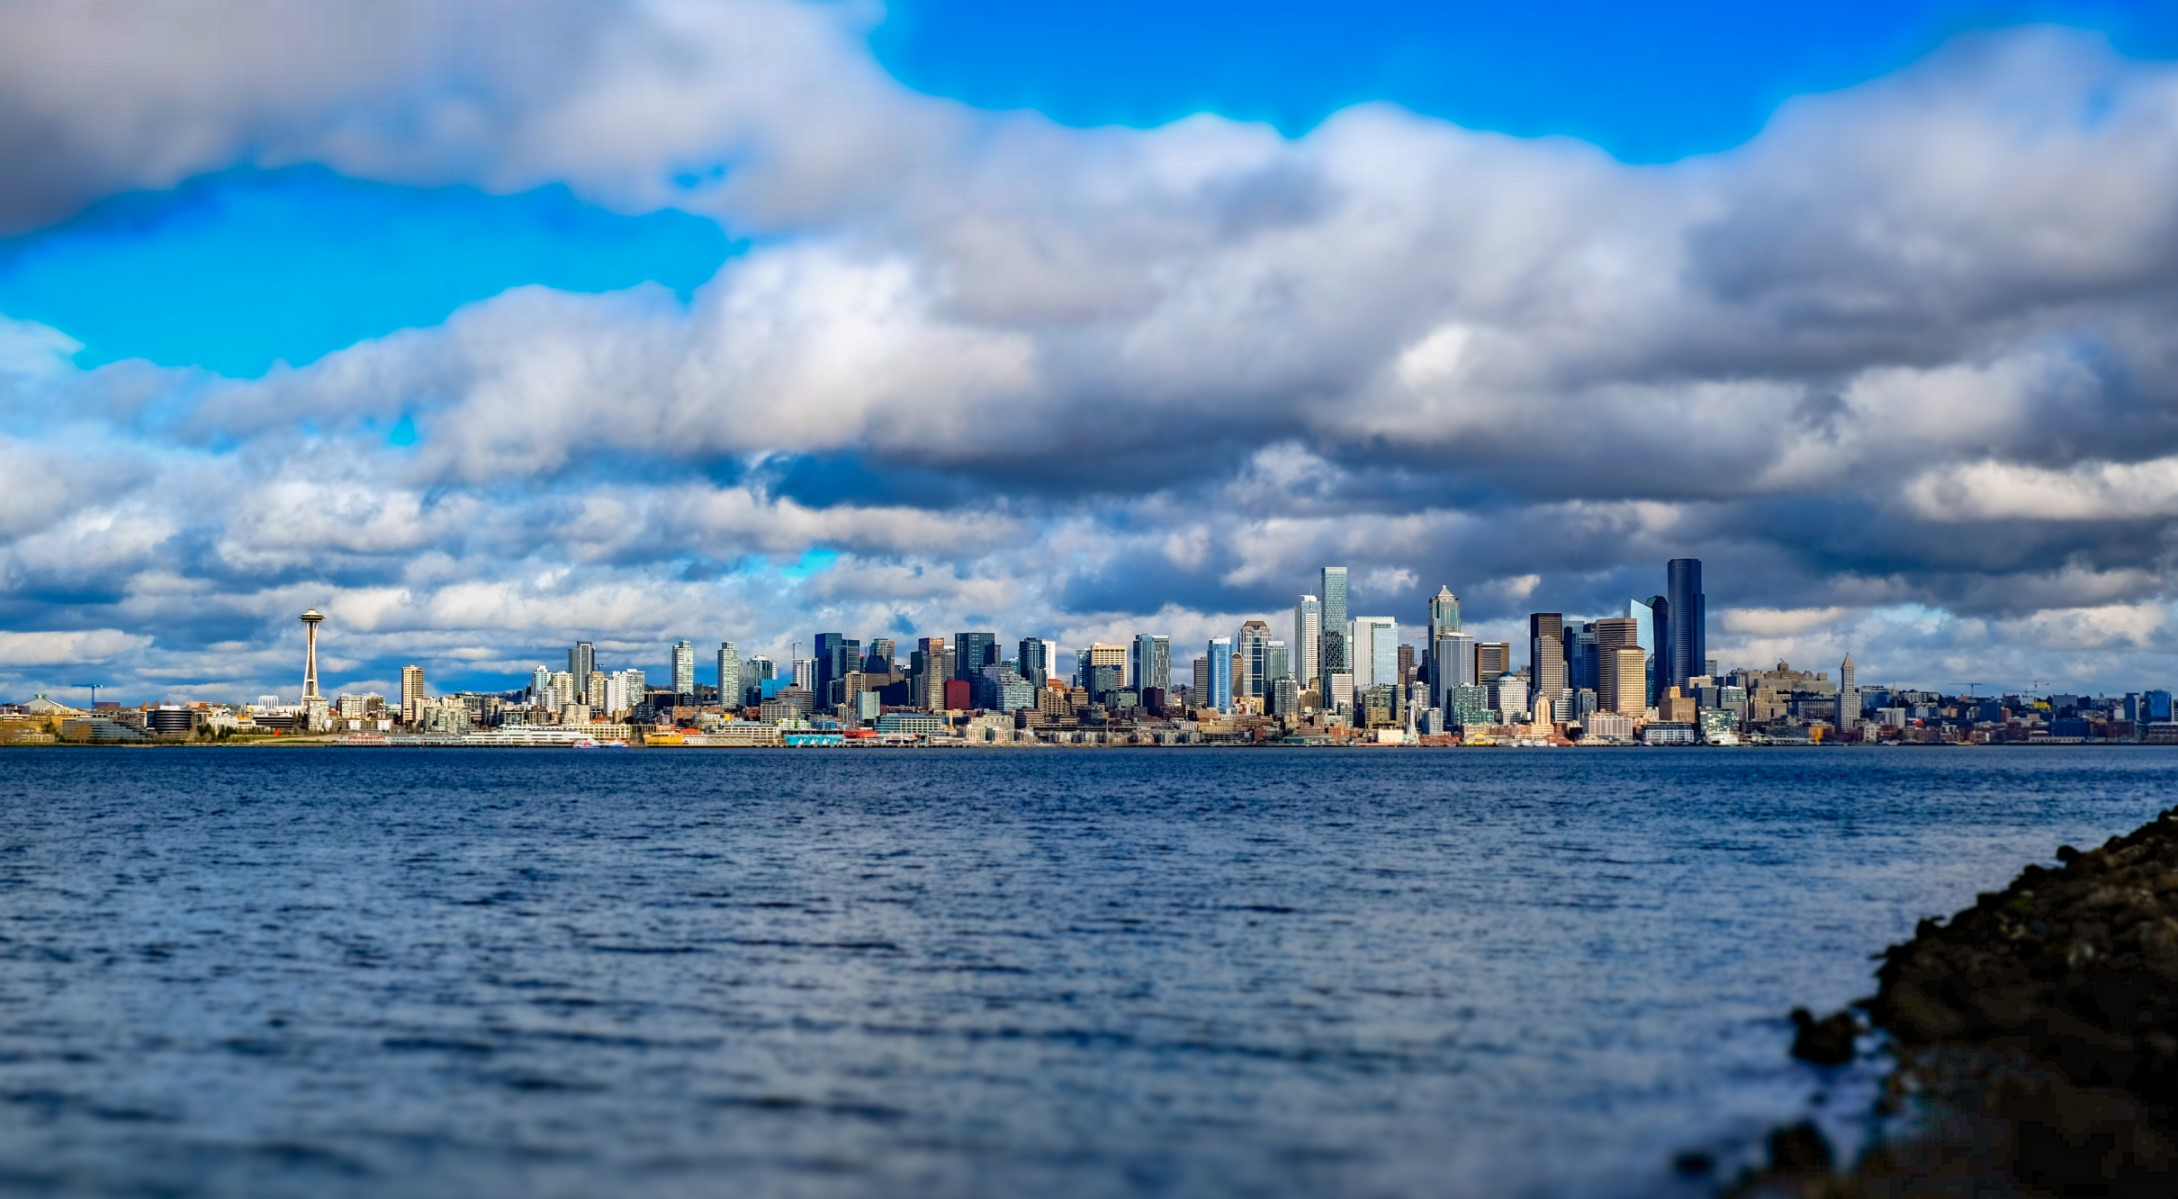 Seattle skyline from across the water on a sunny day